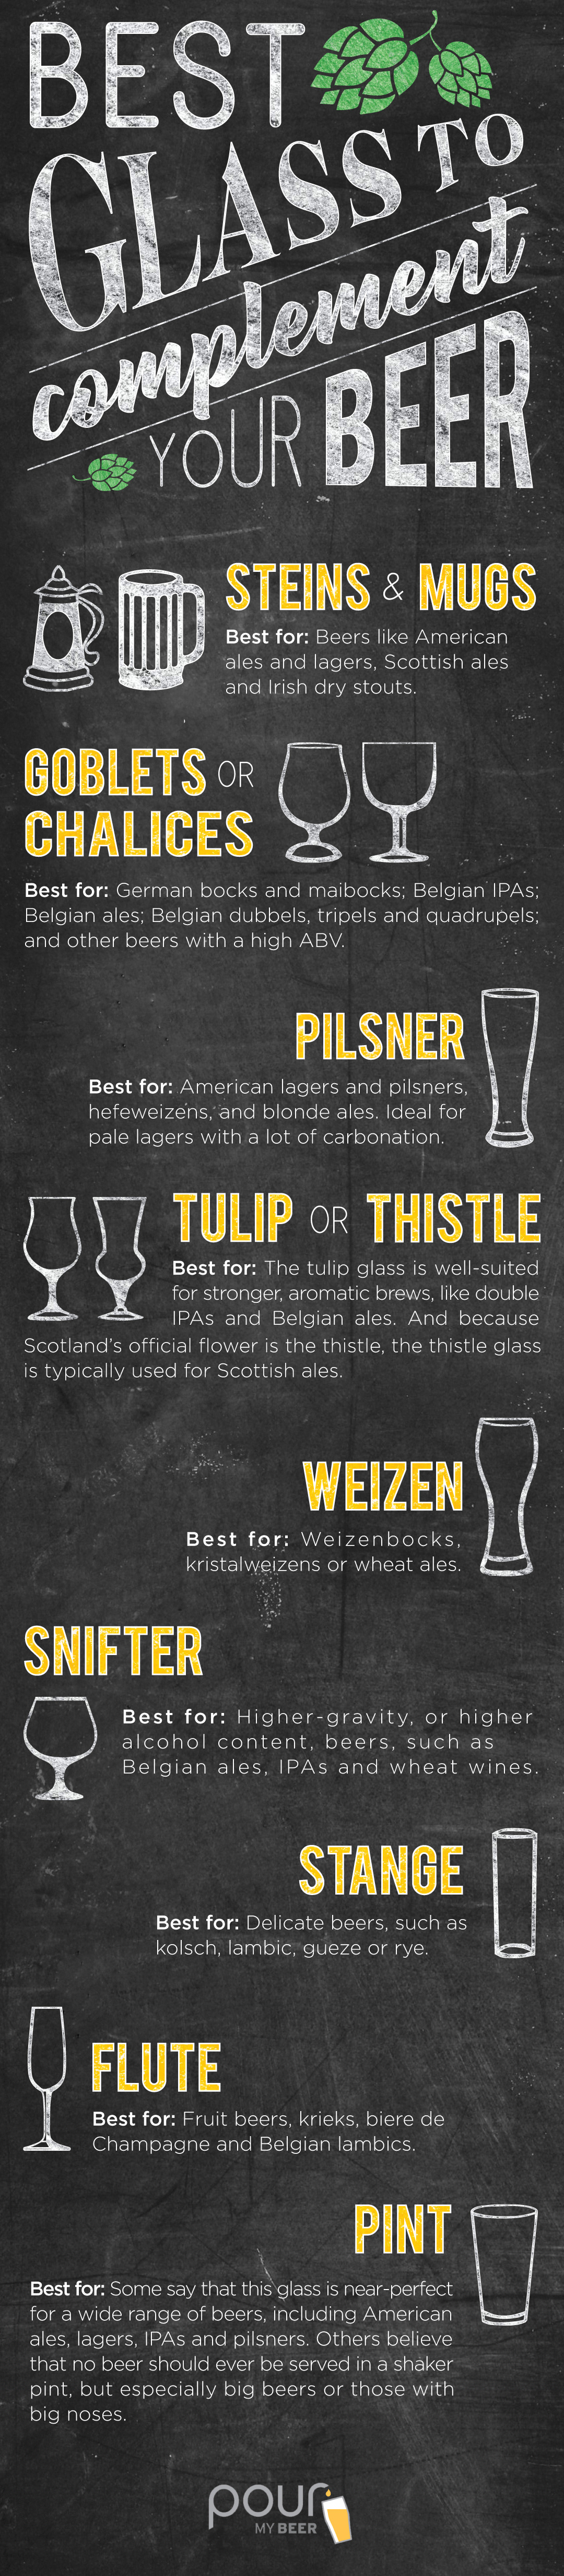 Best Glass to Compliment Beer Infographic